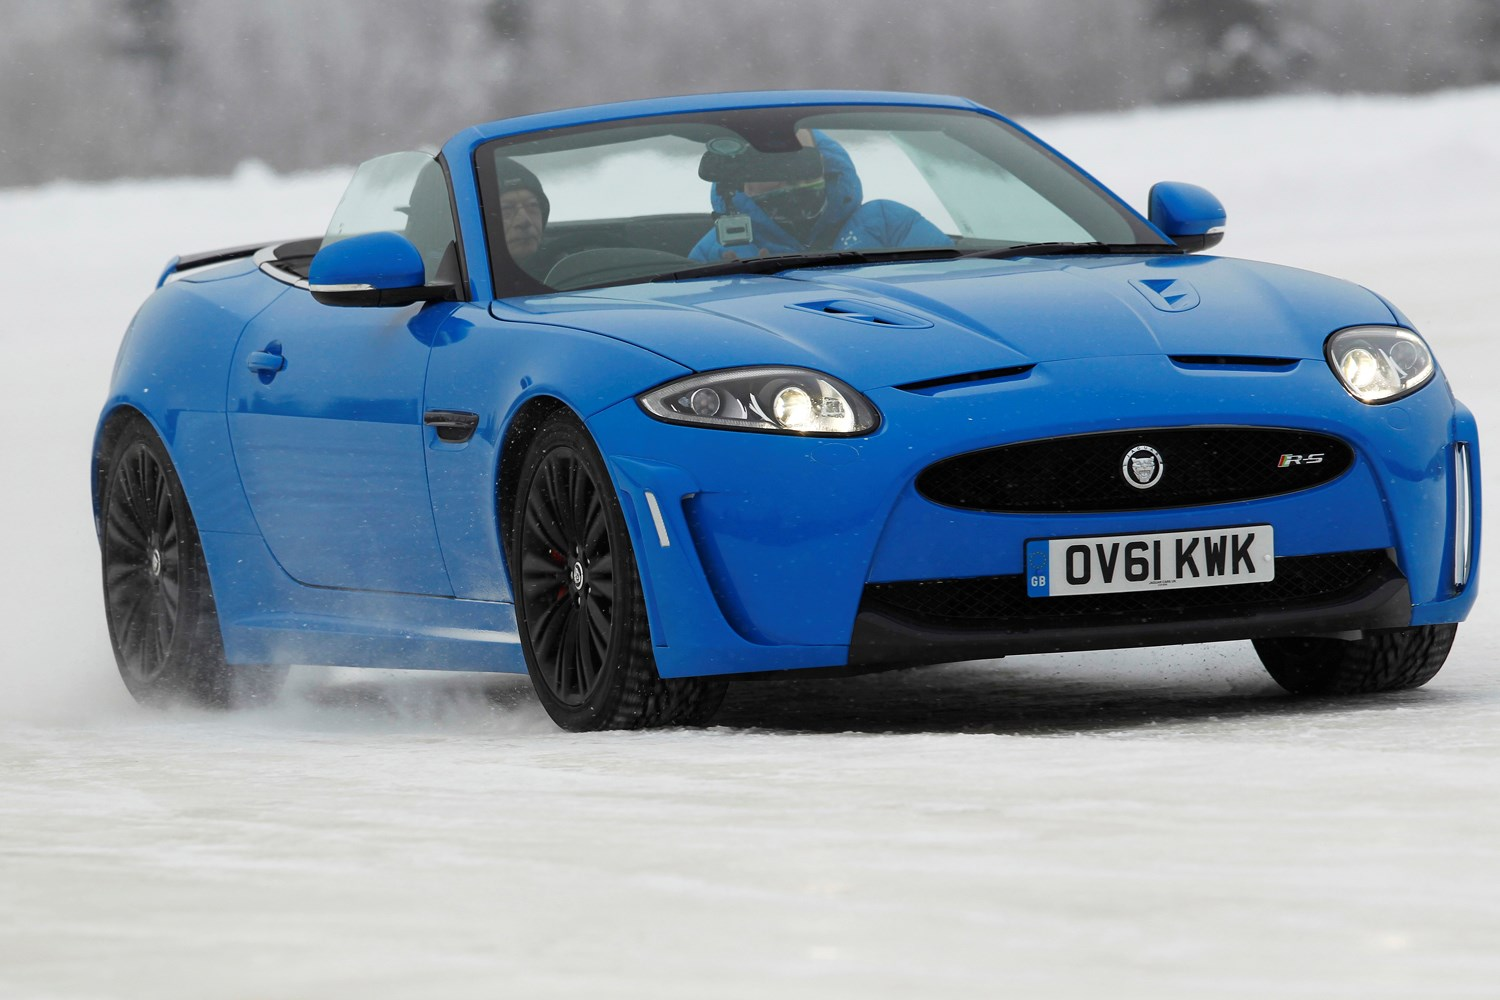 sale s xkr for oyster xk near c stock jaguar htm series gt used